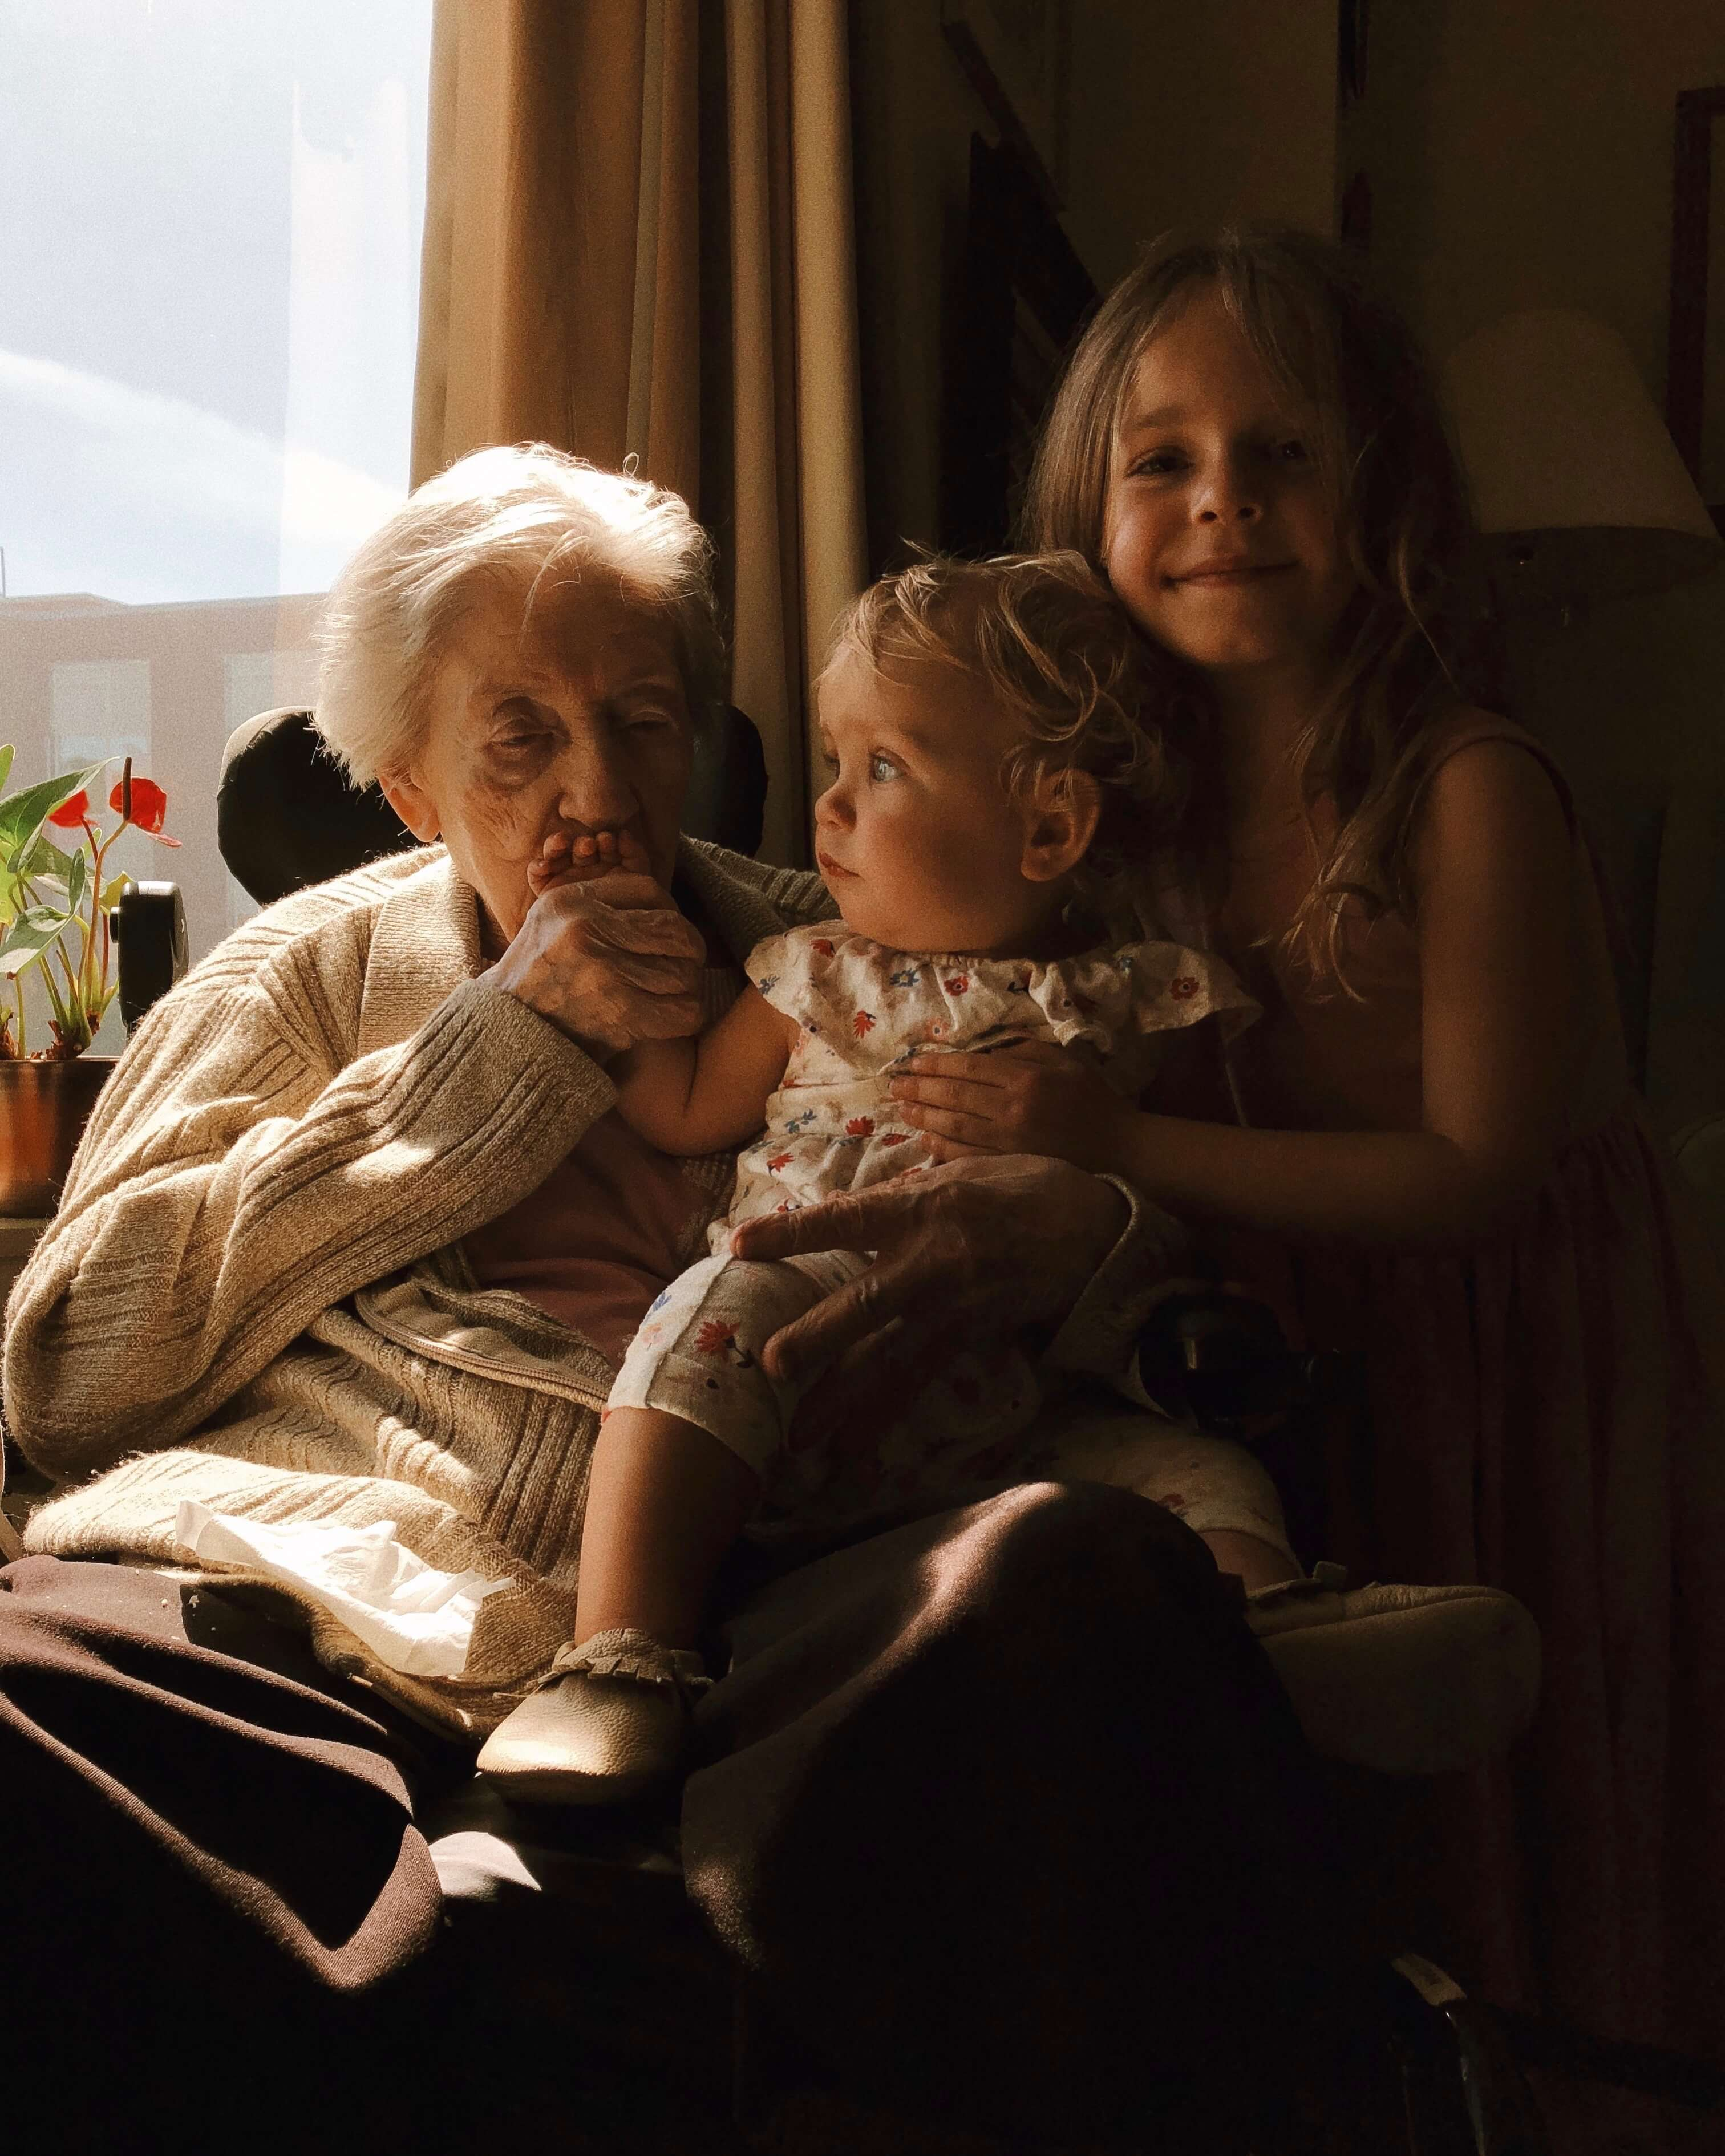 Grandmother with granddaughters by the window